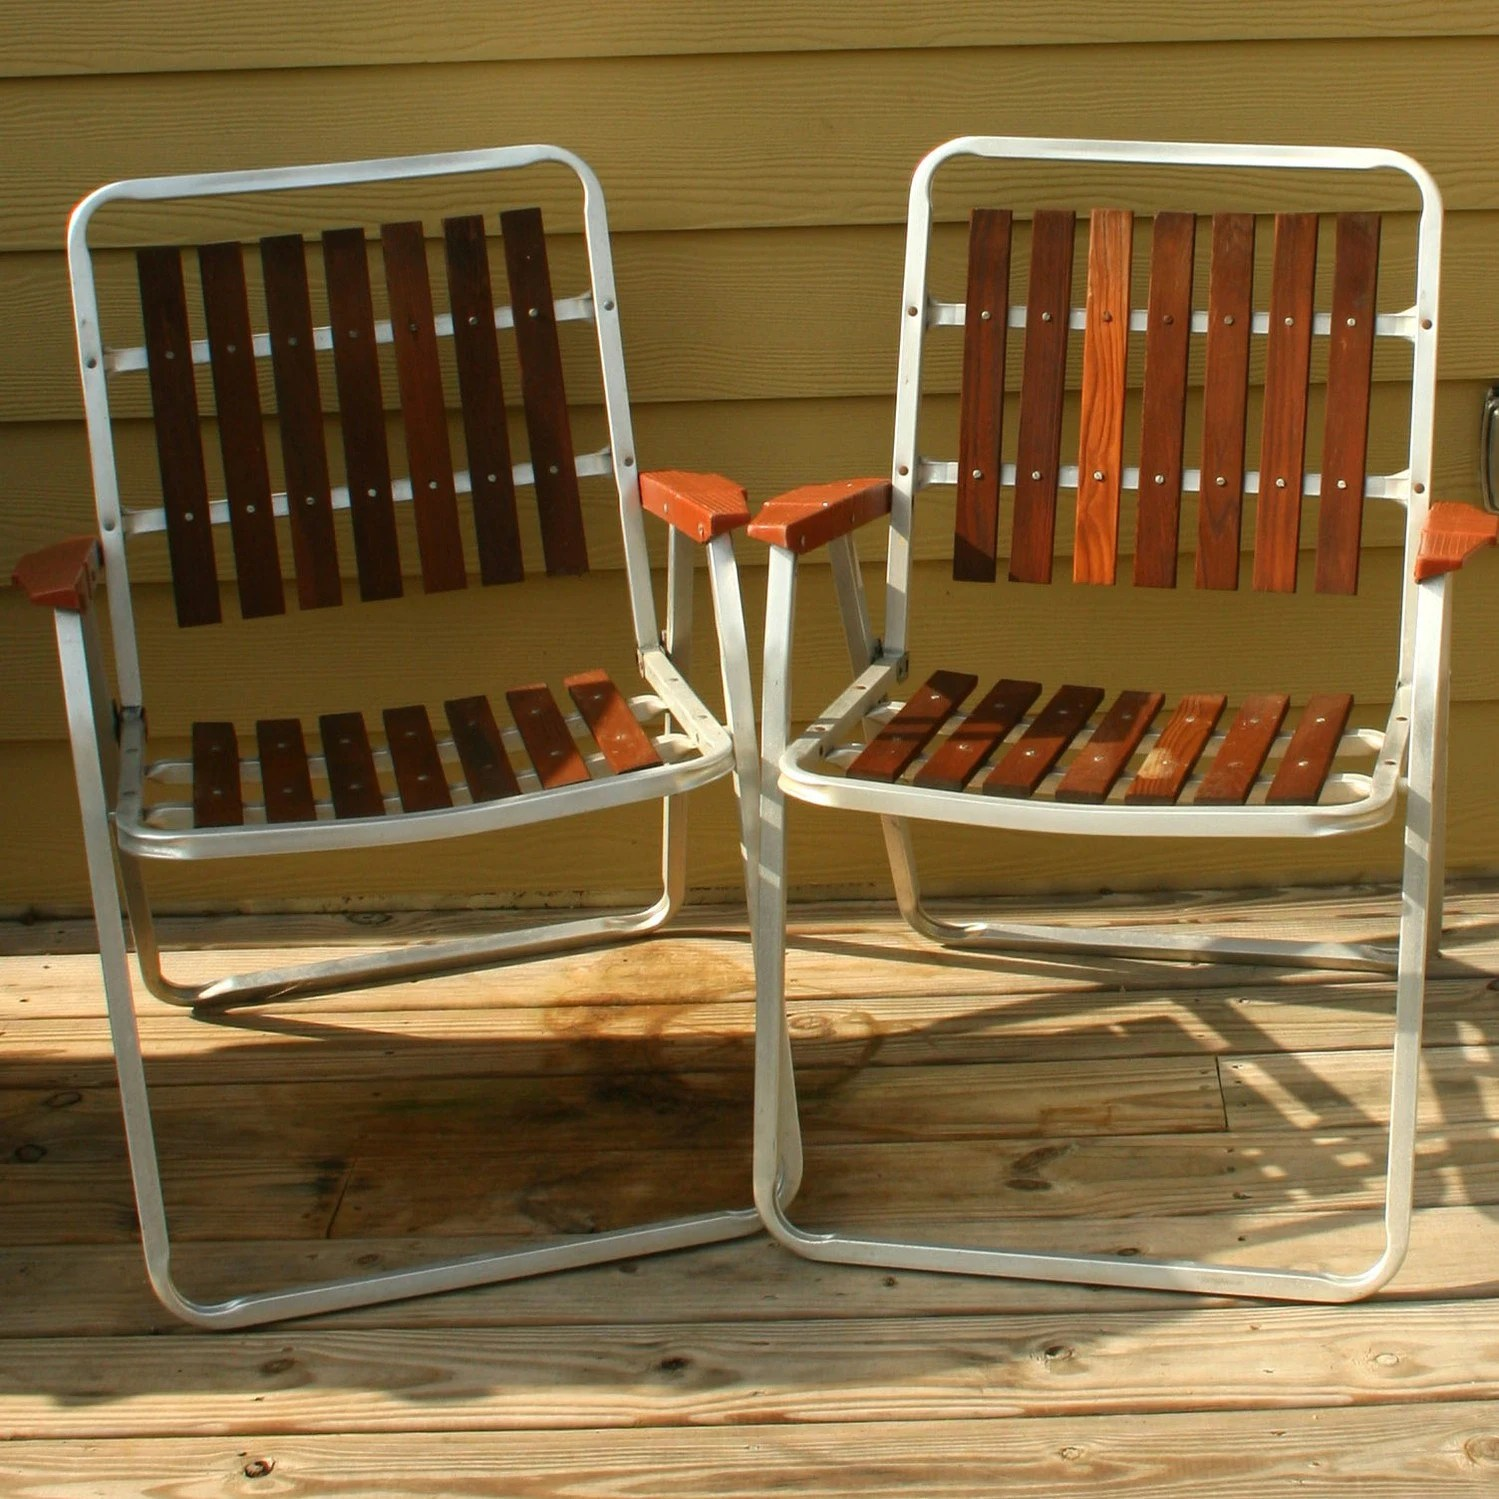 wood lawn chair physio ball base vintage folding chairs mid century modern wooden slats